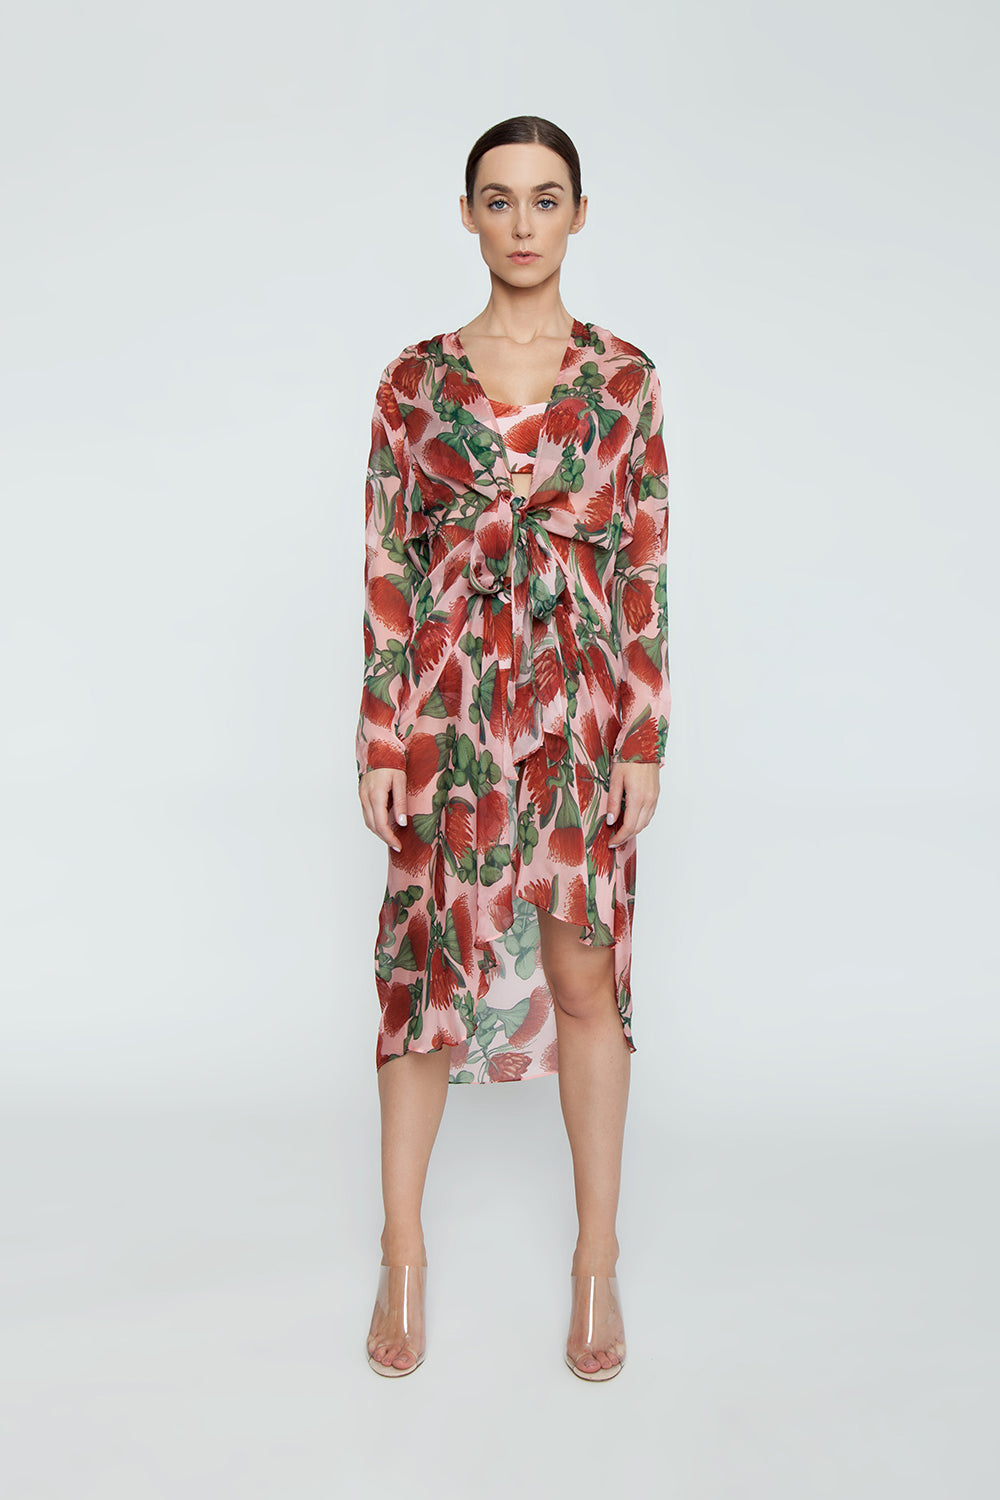 33761851b1faf ... ADRIANA DEGREAS Silk Muslin Long Robe Cover-Up - Fiore Rose Print -  undefined undefined